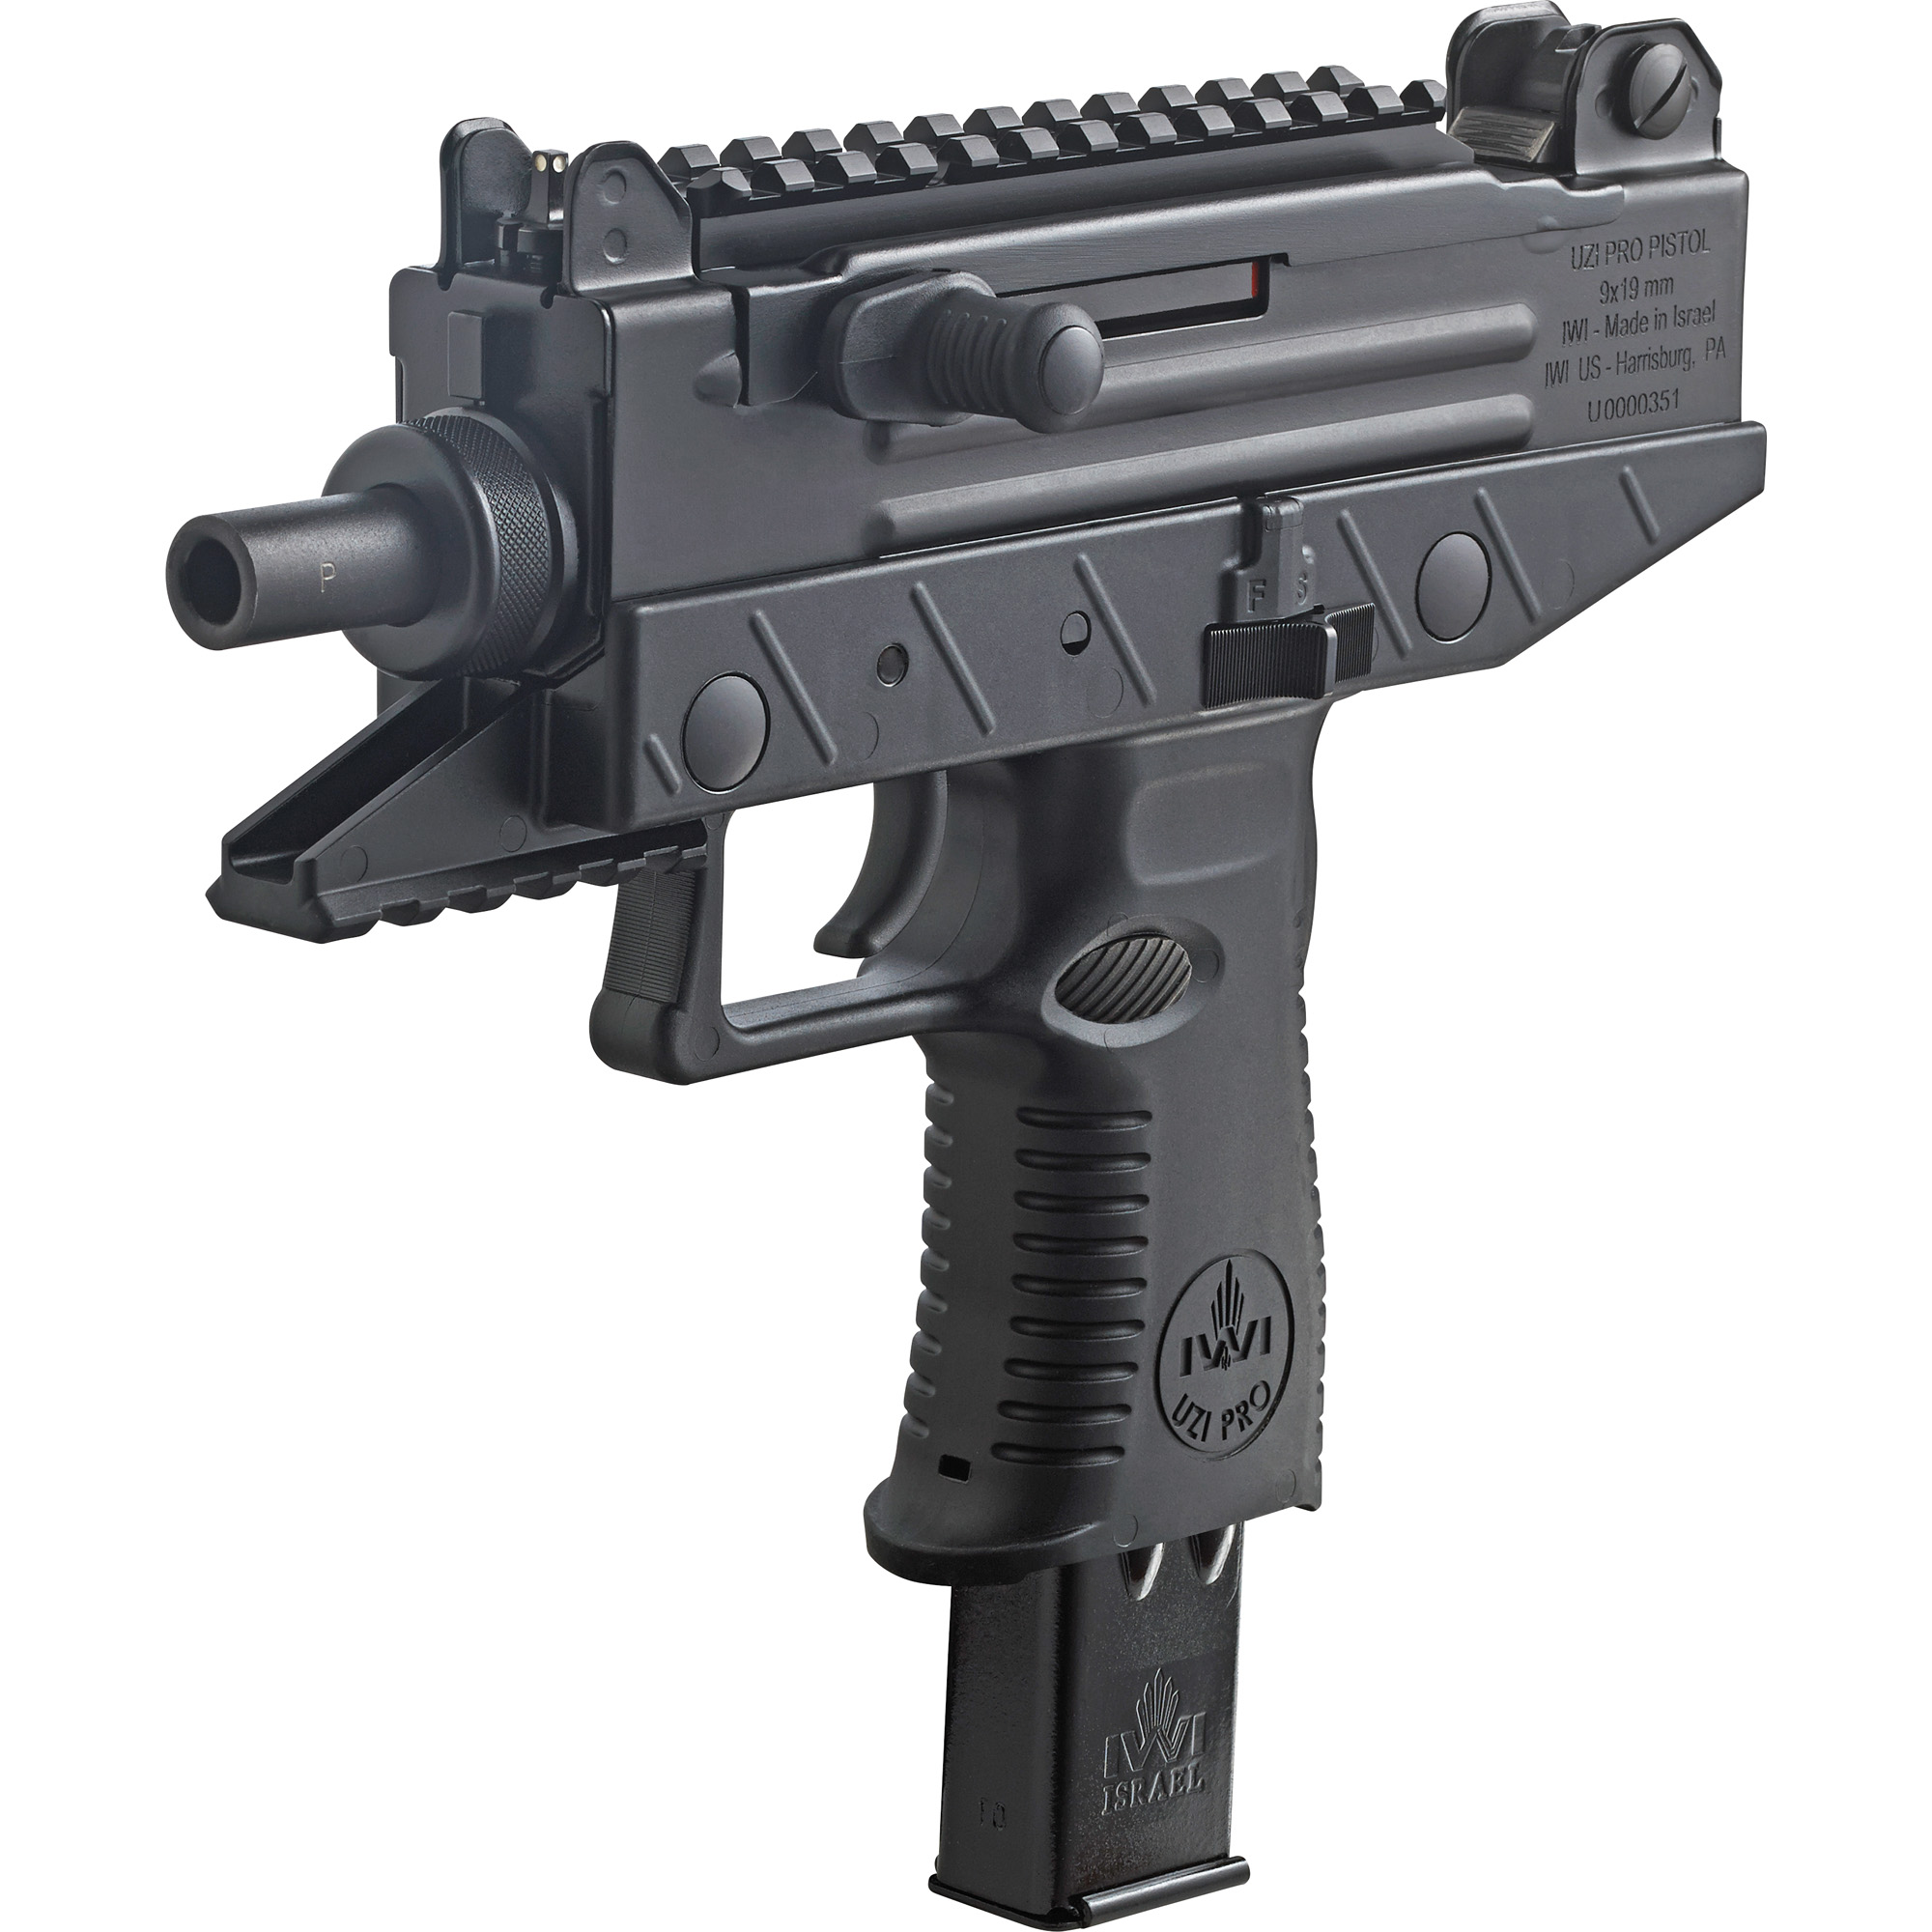 """The UZI PRO pistol is a modernized Micro UZI semi-auto pistol based on the world famous UZI sub-machinegun"""" variations of which have sold in excess of 2""""000""""000 units worldwide. The new blow-back operated 9mm UZI PRO incorporates advanced polymers in the lower section of the receiver resulting in lighter weight and relocation of the magazine release to a more practical and traditional pistol based location. Unlike earlier UZI models"""" the charging handle has been moved from the top of the pistol to the left side of the receiver. This allows the addition of a full length Picatinny rail to the top of the pistol"""" permitting the use of any optical device that utilizes a Picatinny rail clamp mount. An additional Picatinny rail is incorporated in the polymer lower that allows the use of lights and/or lasers to be mounted directly under the barrel."""